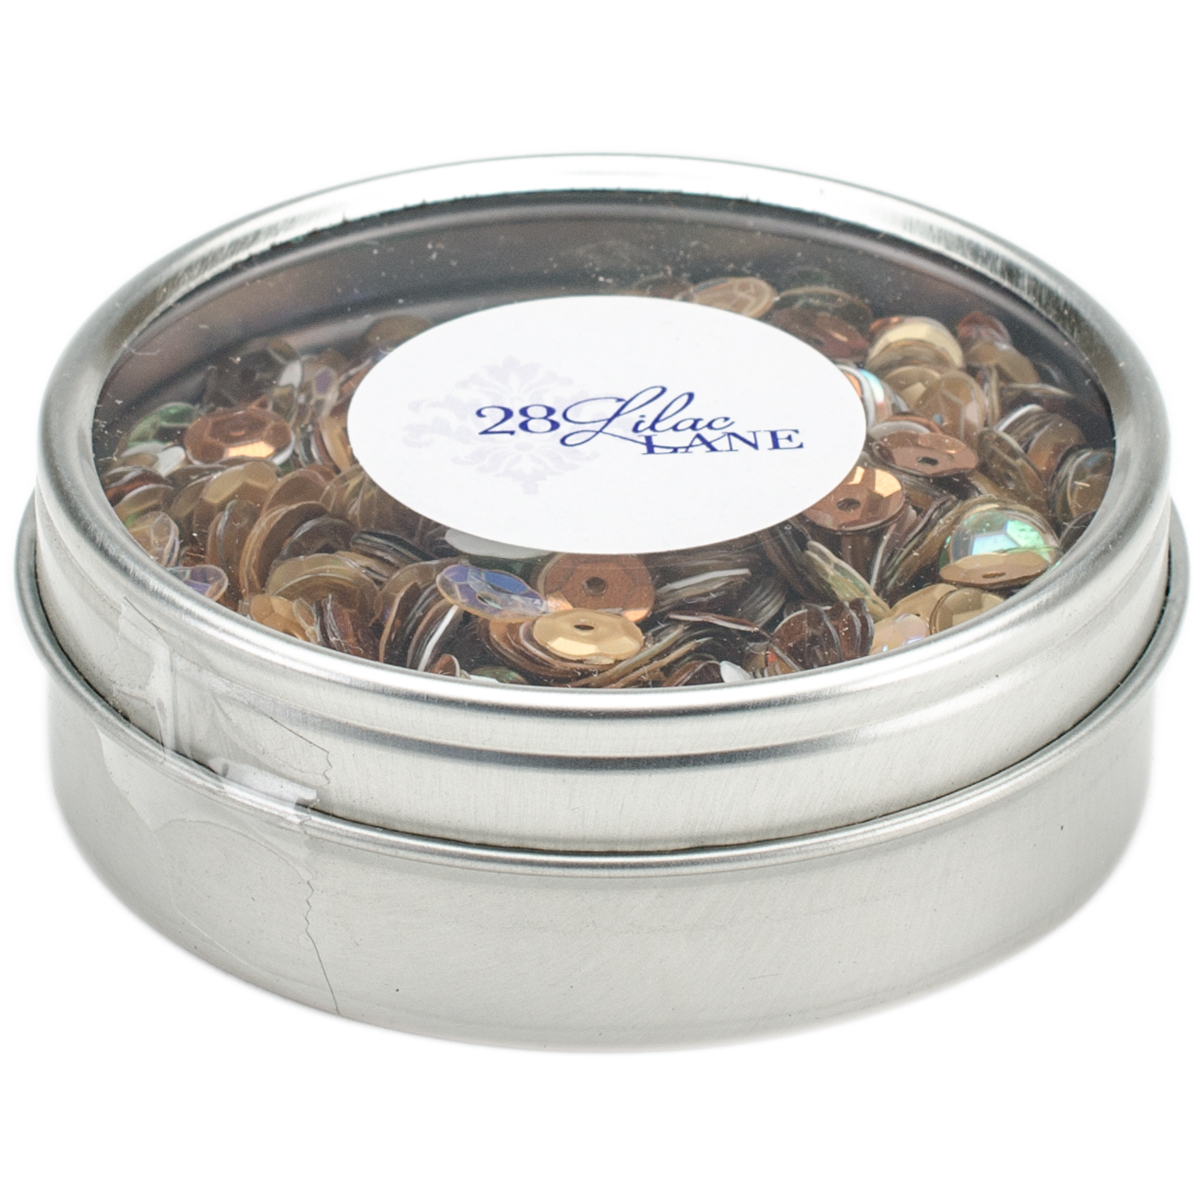 28 Lilac Lane Tin W/Sequins 40g-Neutrals